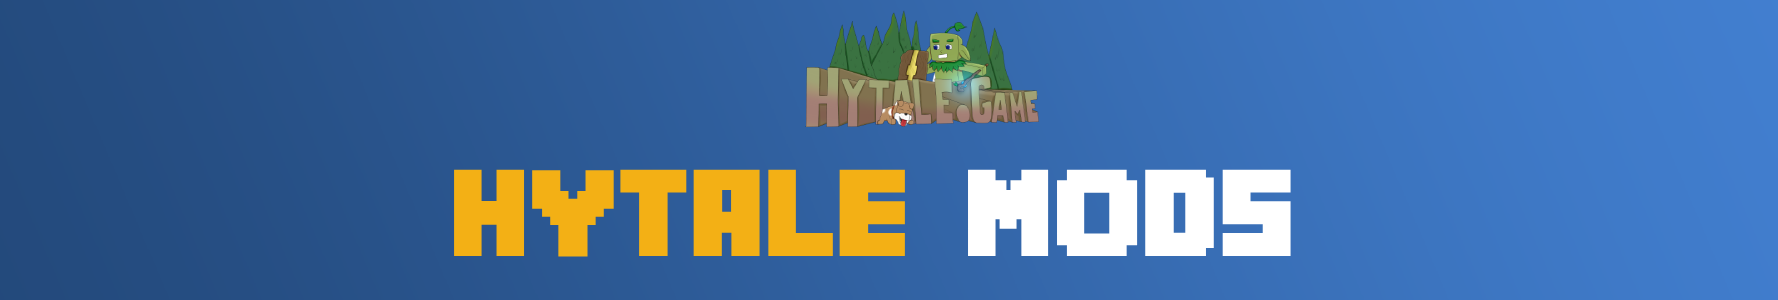 hytale-mods.png